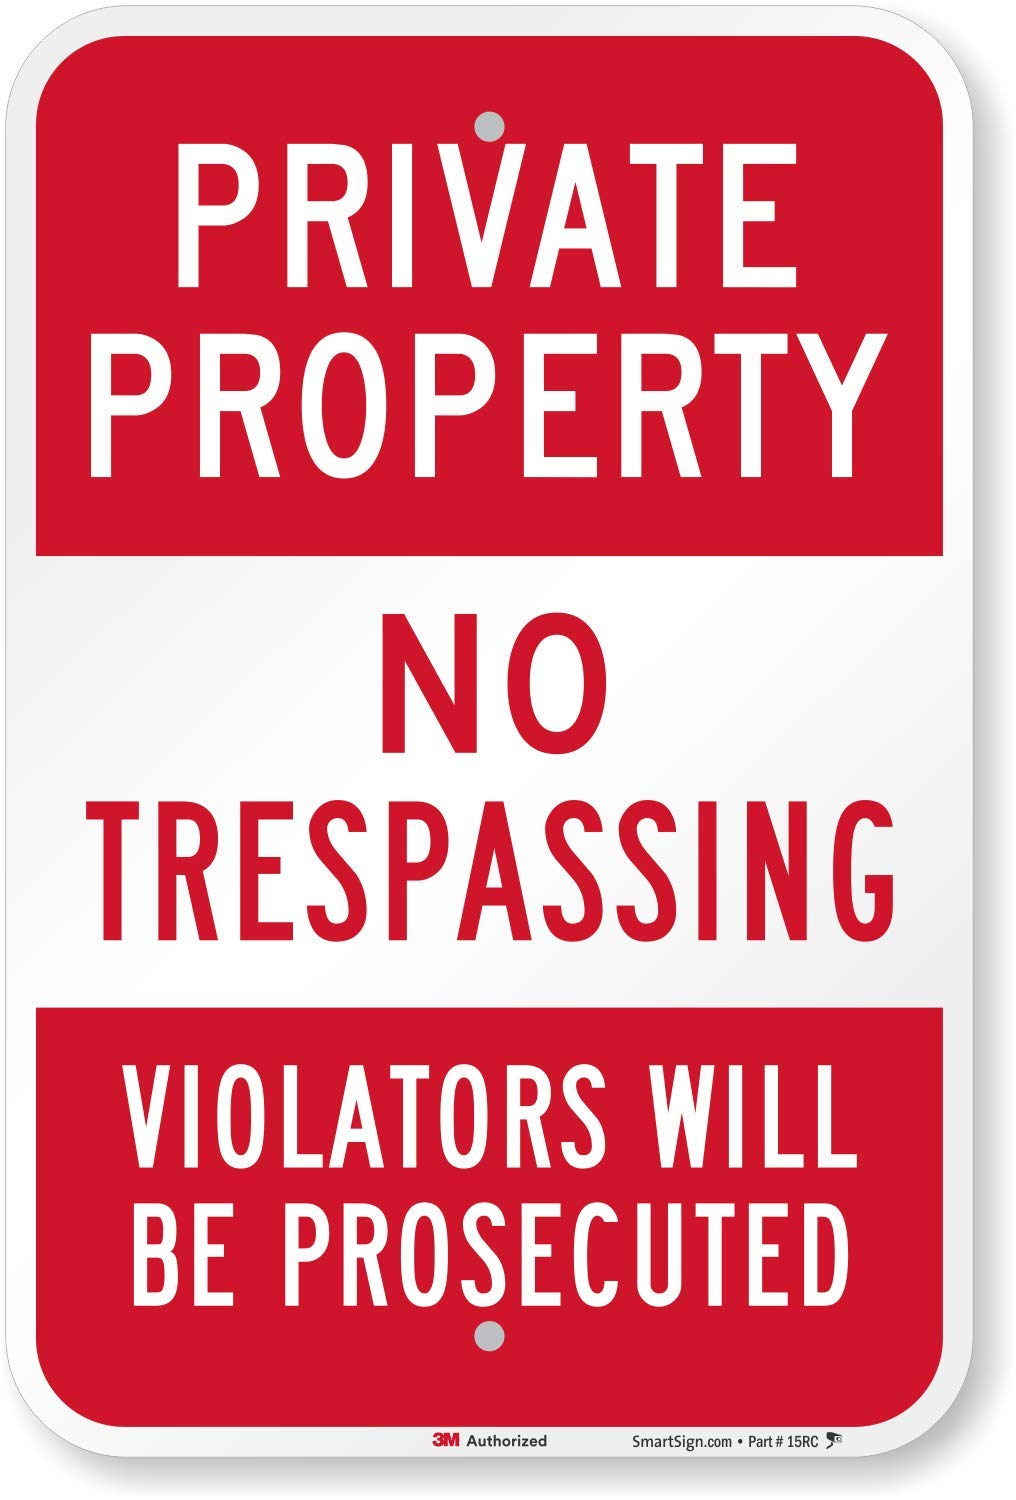 ''Private Property - No Trespassing, Violators Prosecuted'' Sign By SmartSign   12'' x 18'' 3M High Intensity Grade Reflective Aluminum